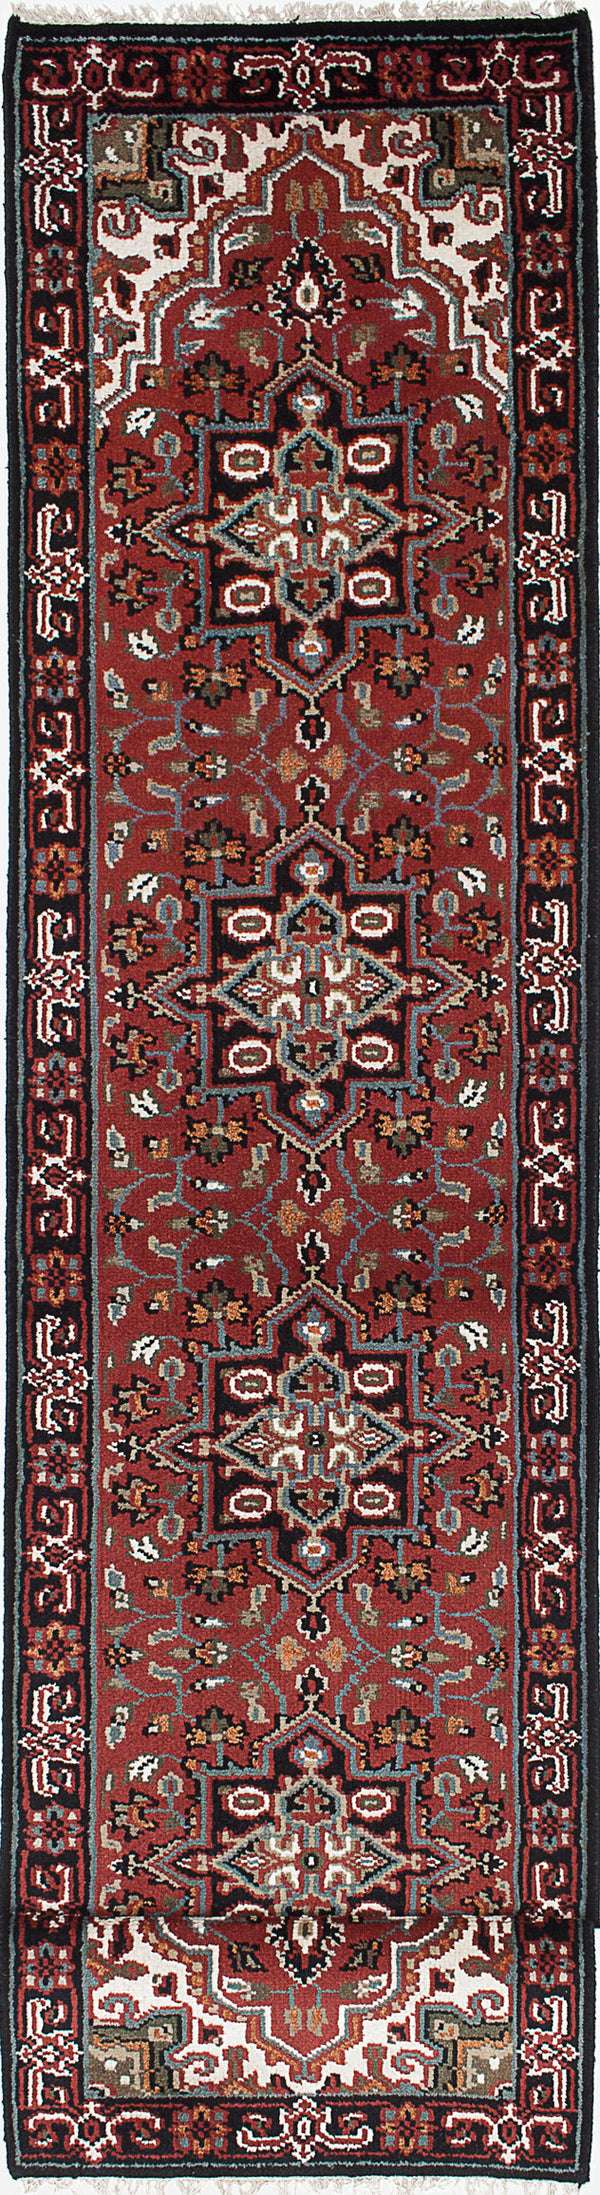 Hand-knotted Indian Geometric  Traditional Royal-Heriz Runner rug  Dark Red 2.8 x 20.2